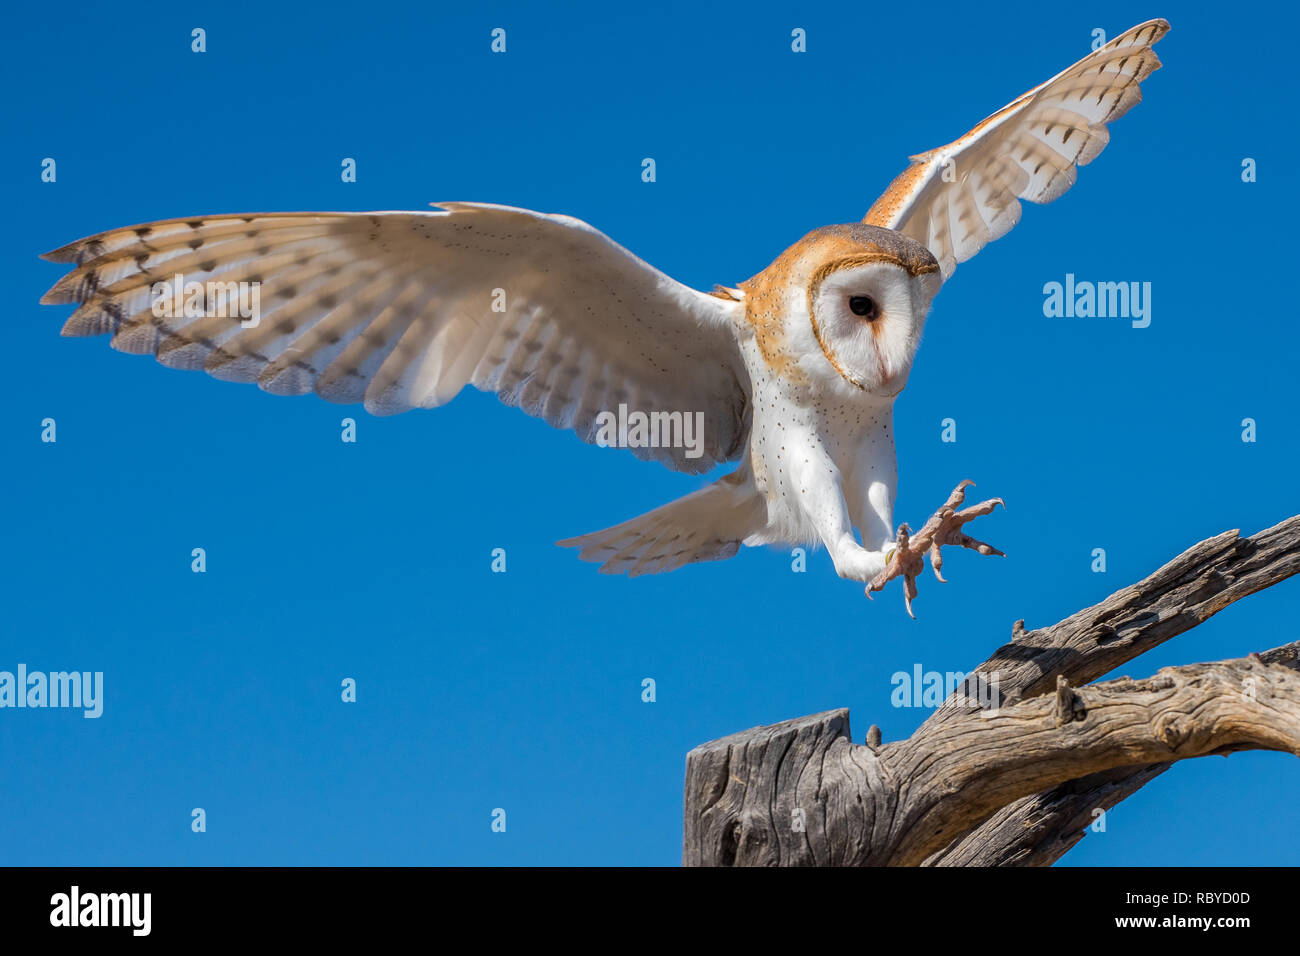 Barn Owl in Flight Preparing for a Landing on Bare Branches - Stock Image